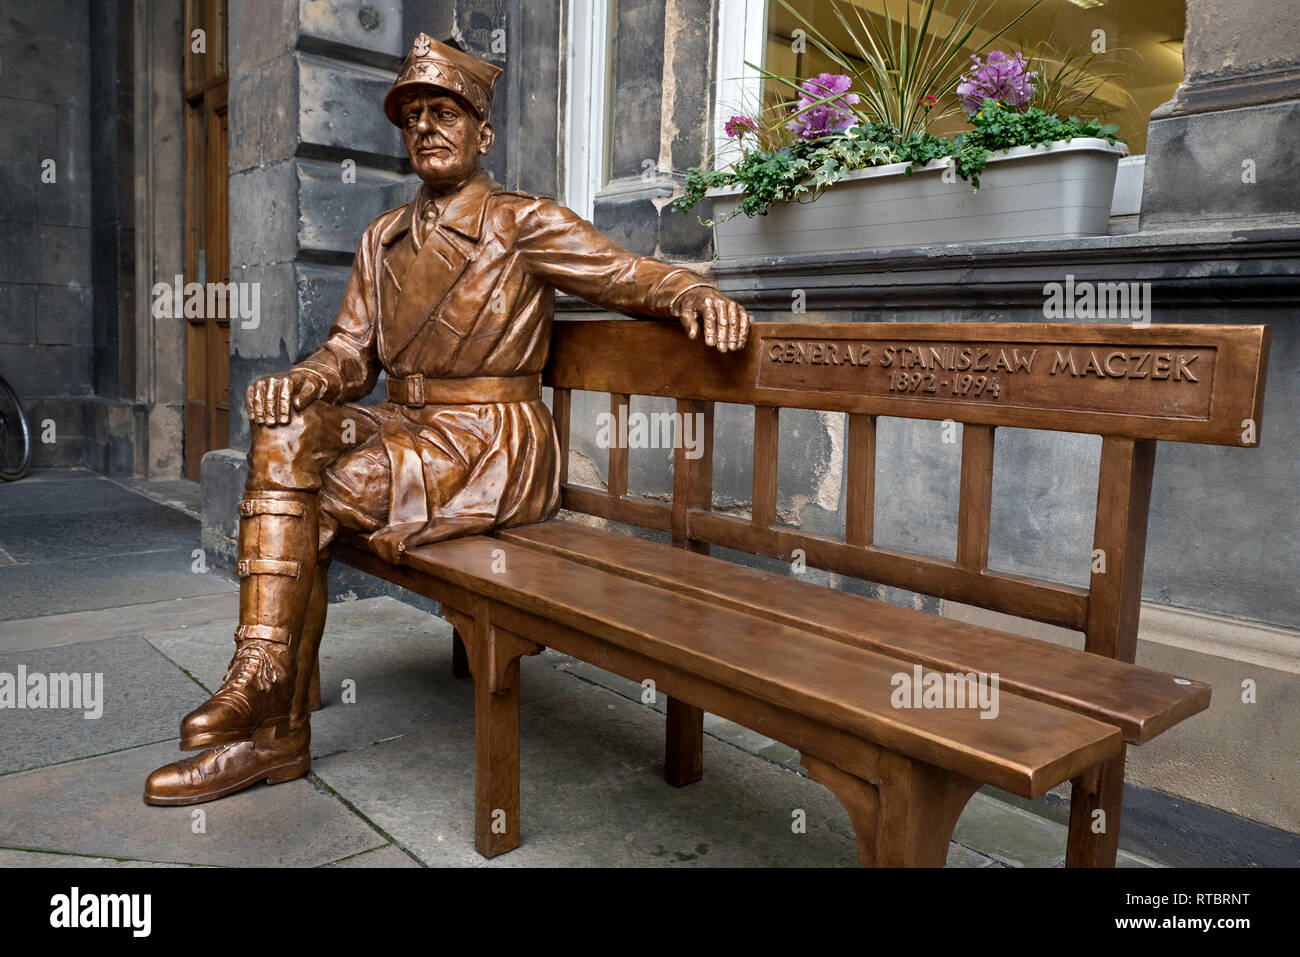 Statue of the Polish war hero General Stanislaw Maczek at the City Chambers on The Royal Mile in Edinburgh's Old Town. Stock Photo